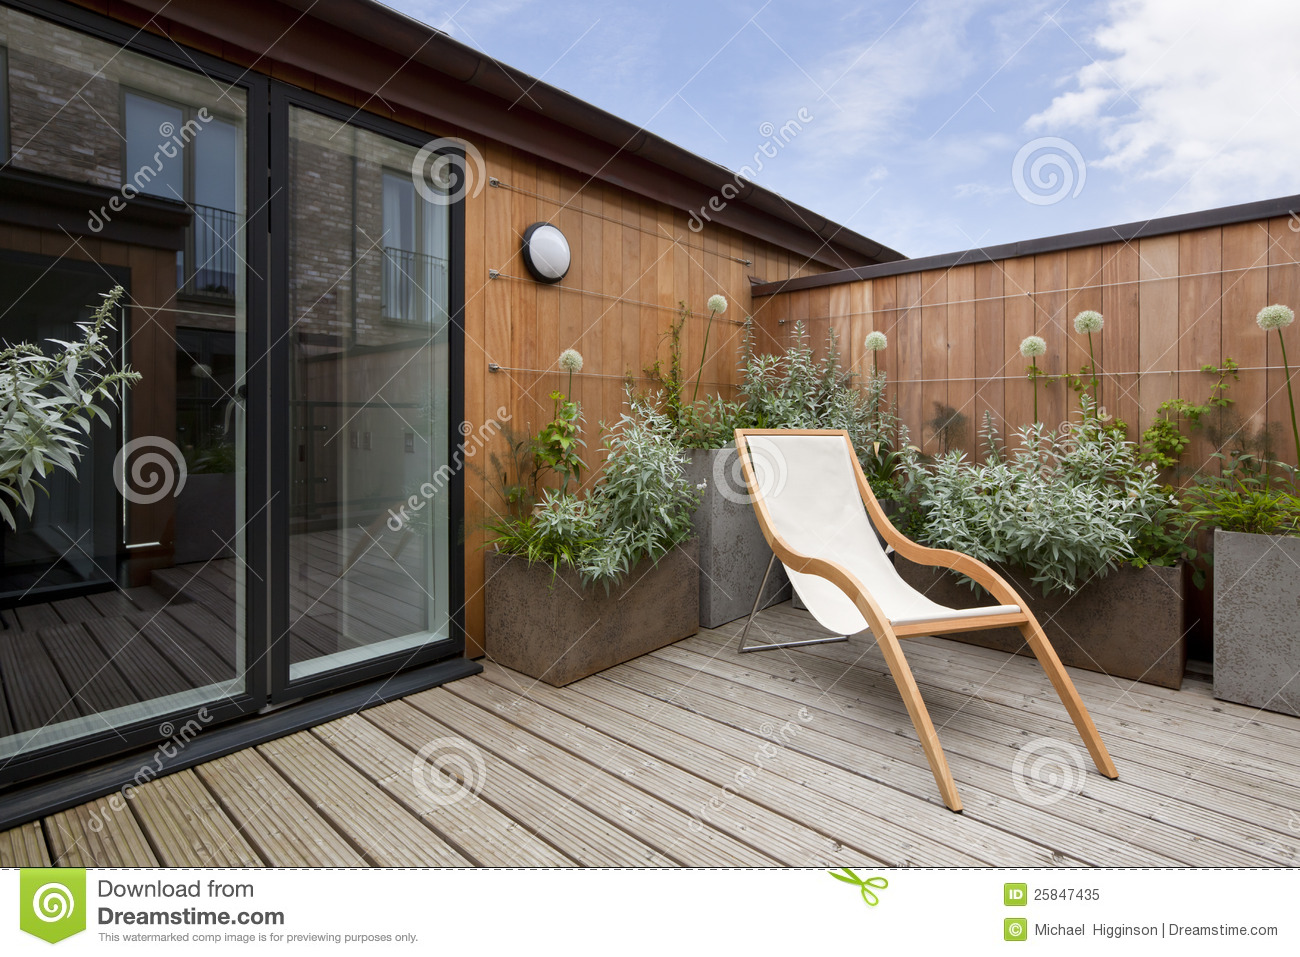 modern wood chair plans low folding beach urban balcony garden stock image. image of deckchair - 25847435